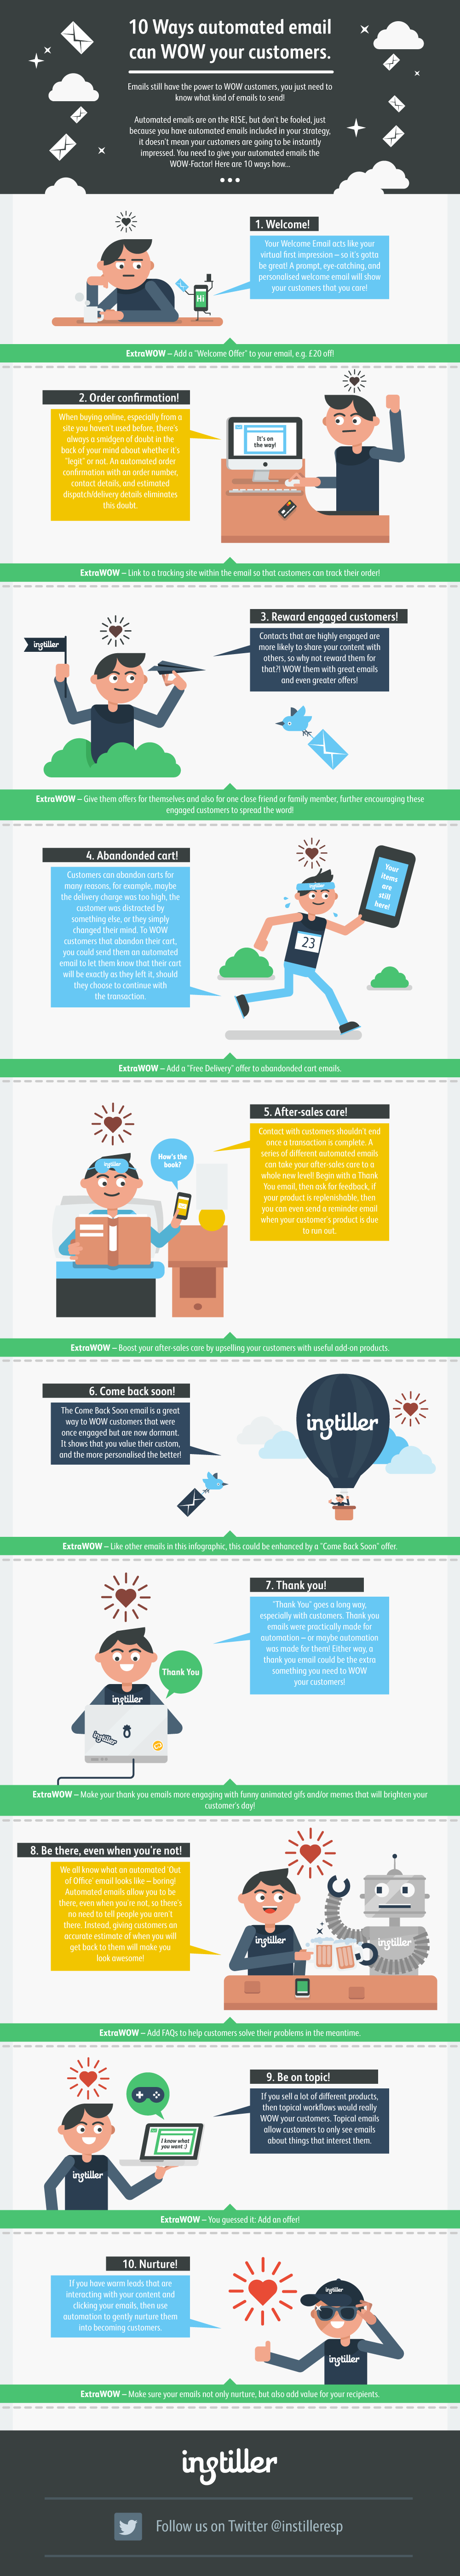 Instiller-10-Ways-Automated-Email-can-WOW-your-customers-V1.png